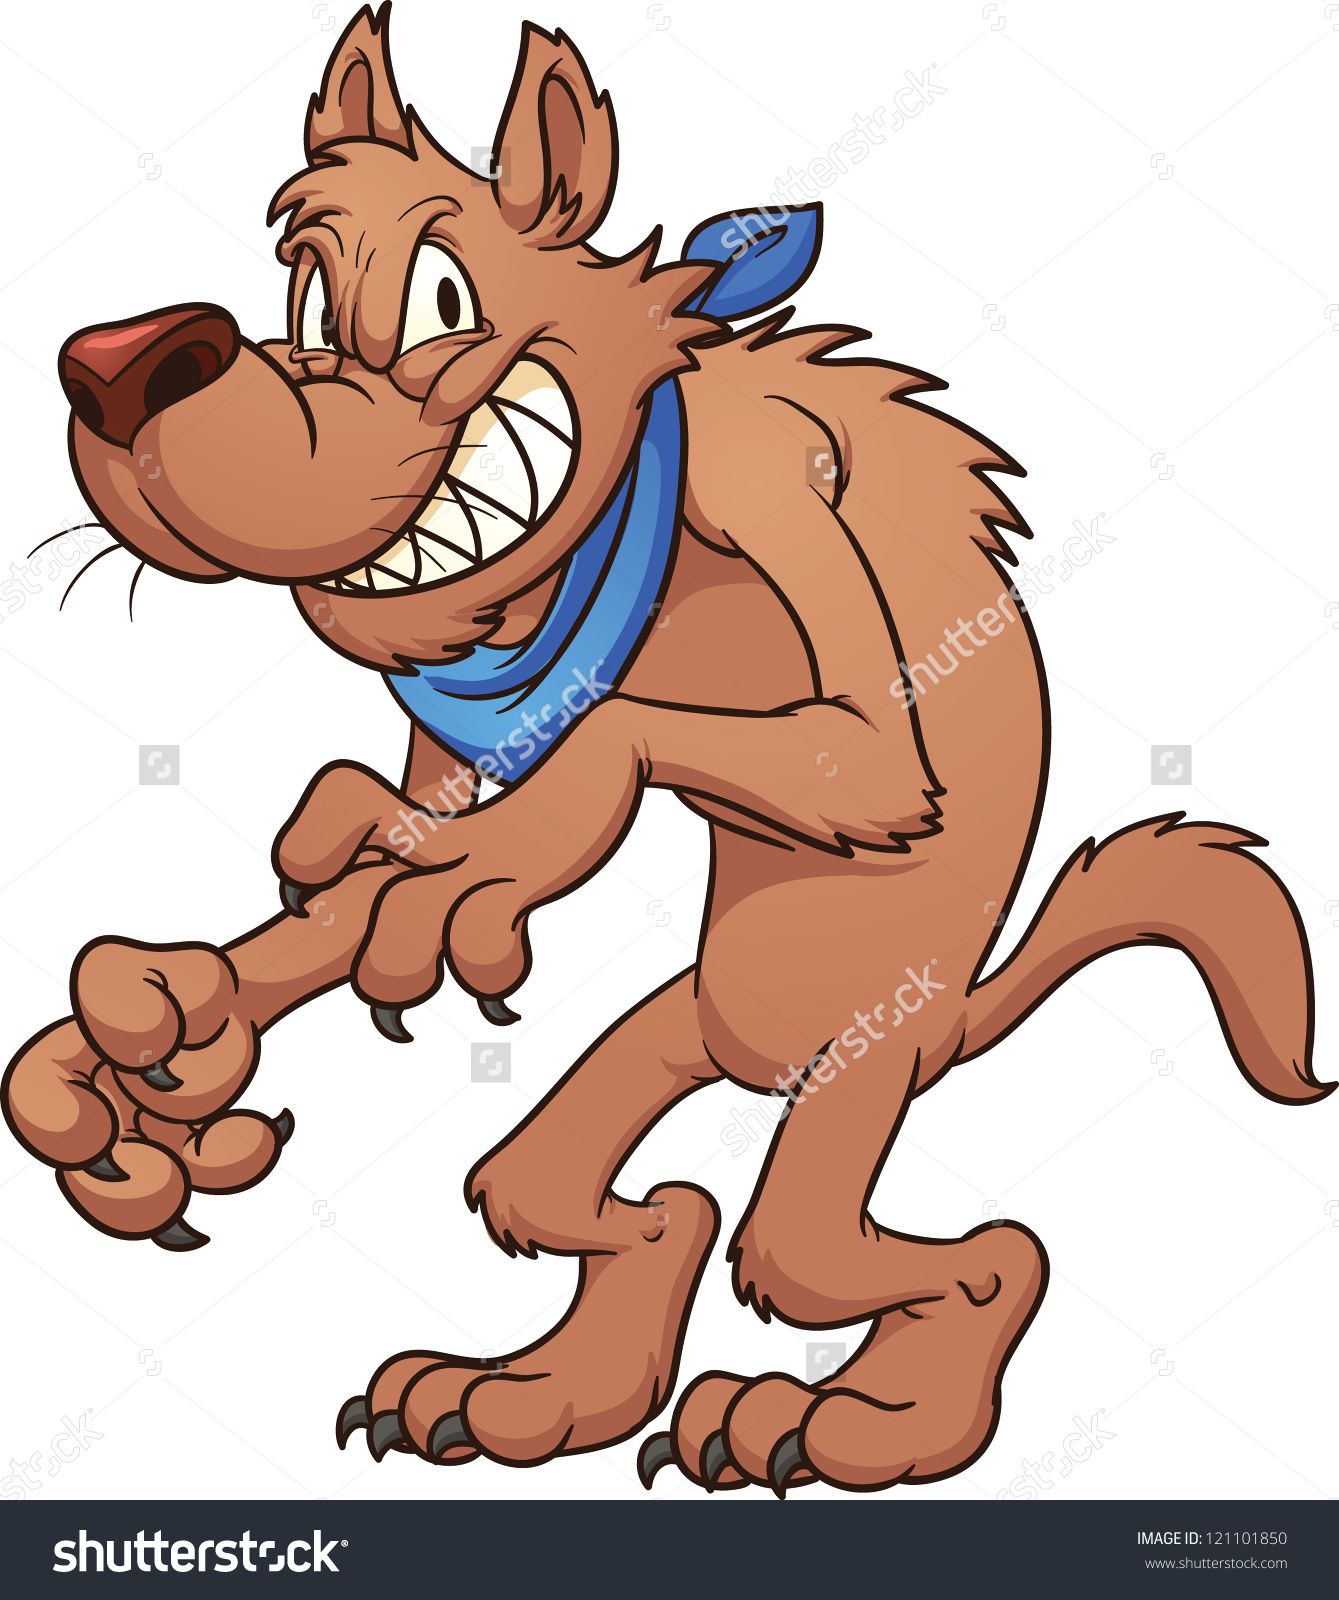 54+ Big Bad Wolf Clipart.